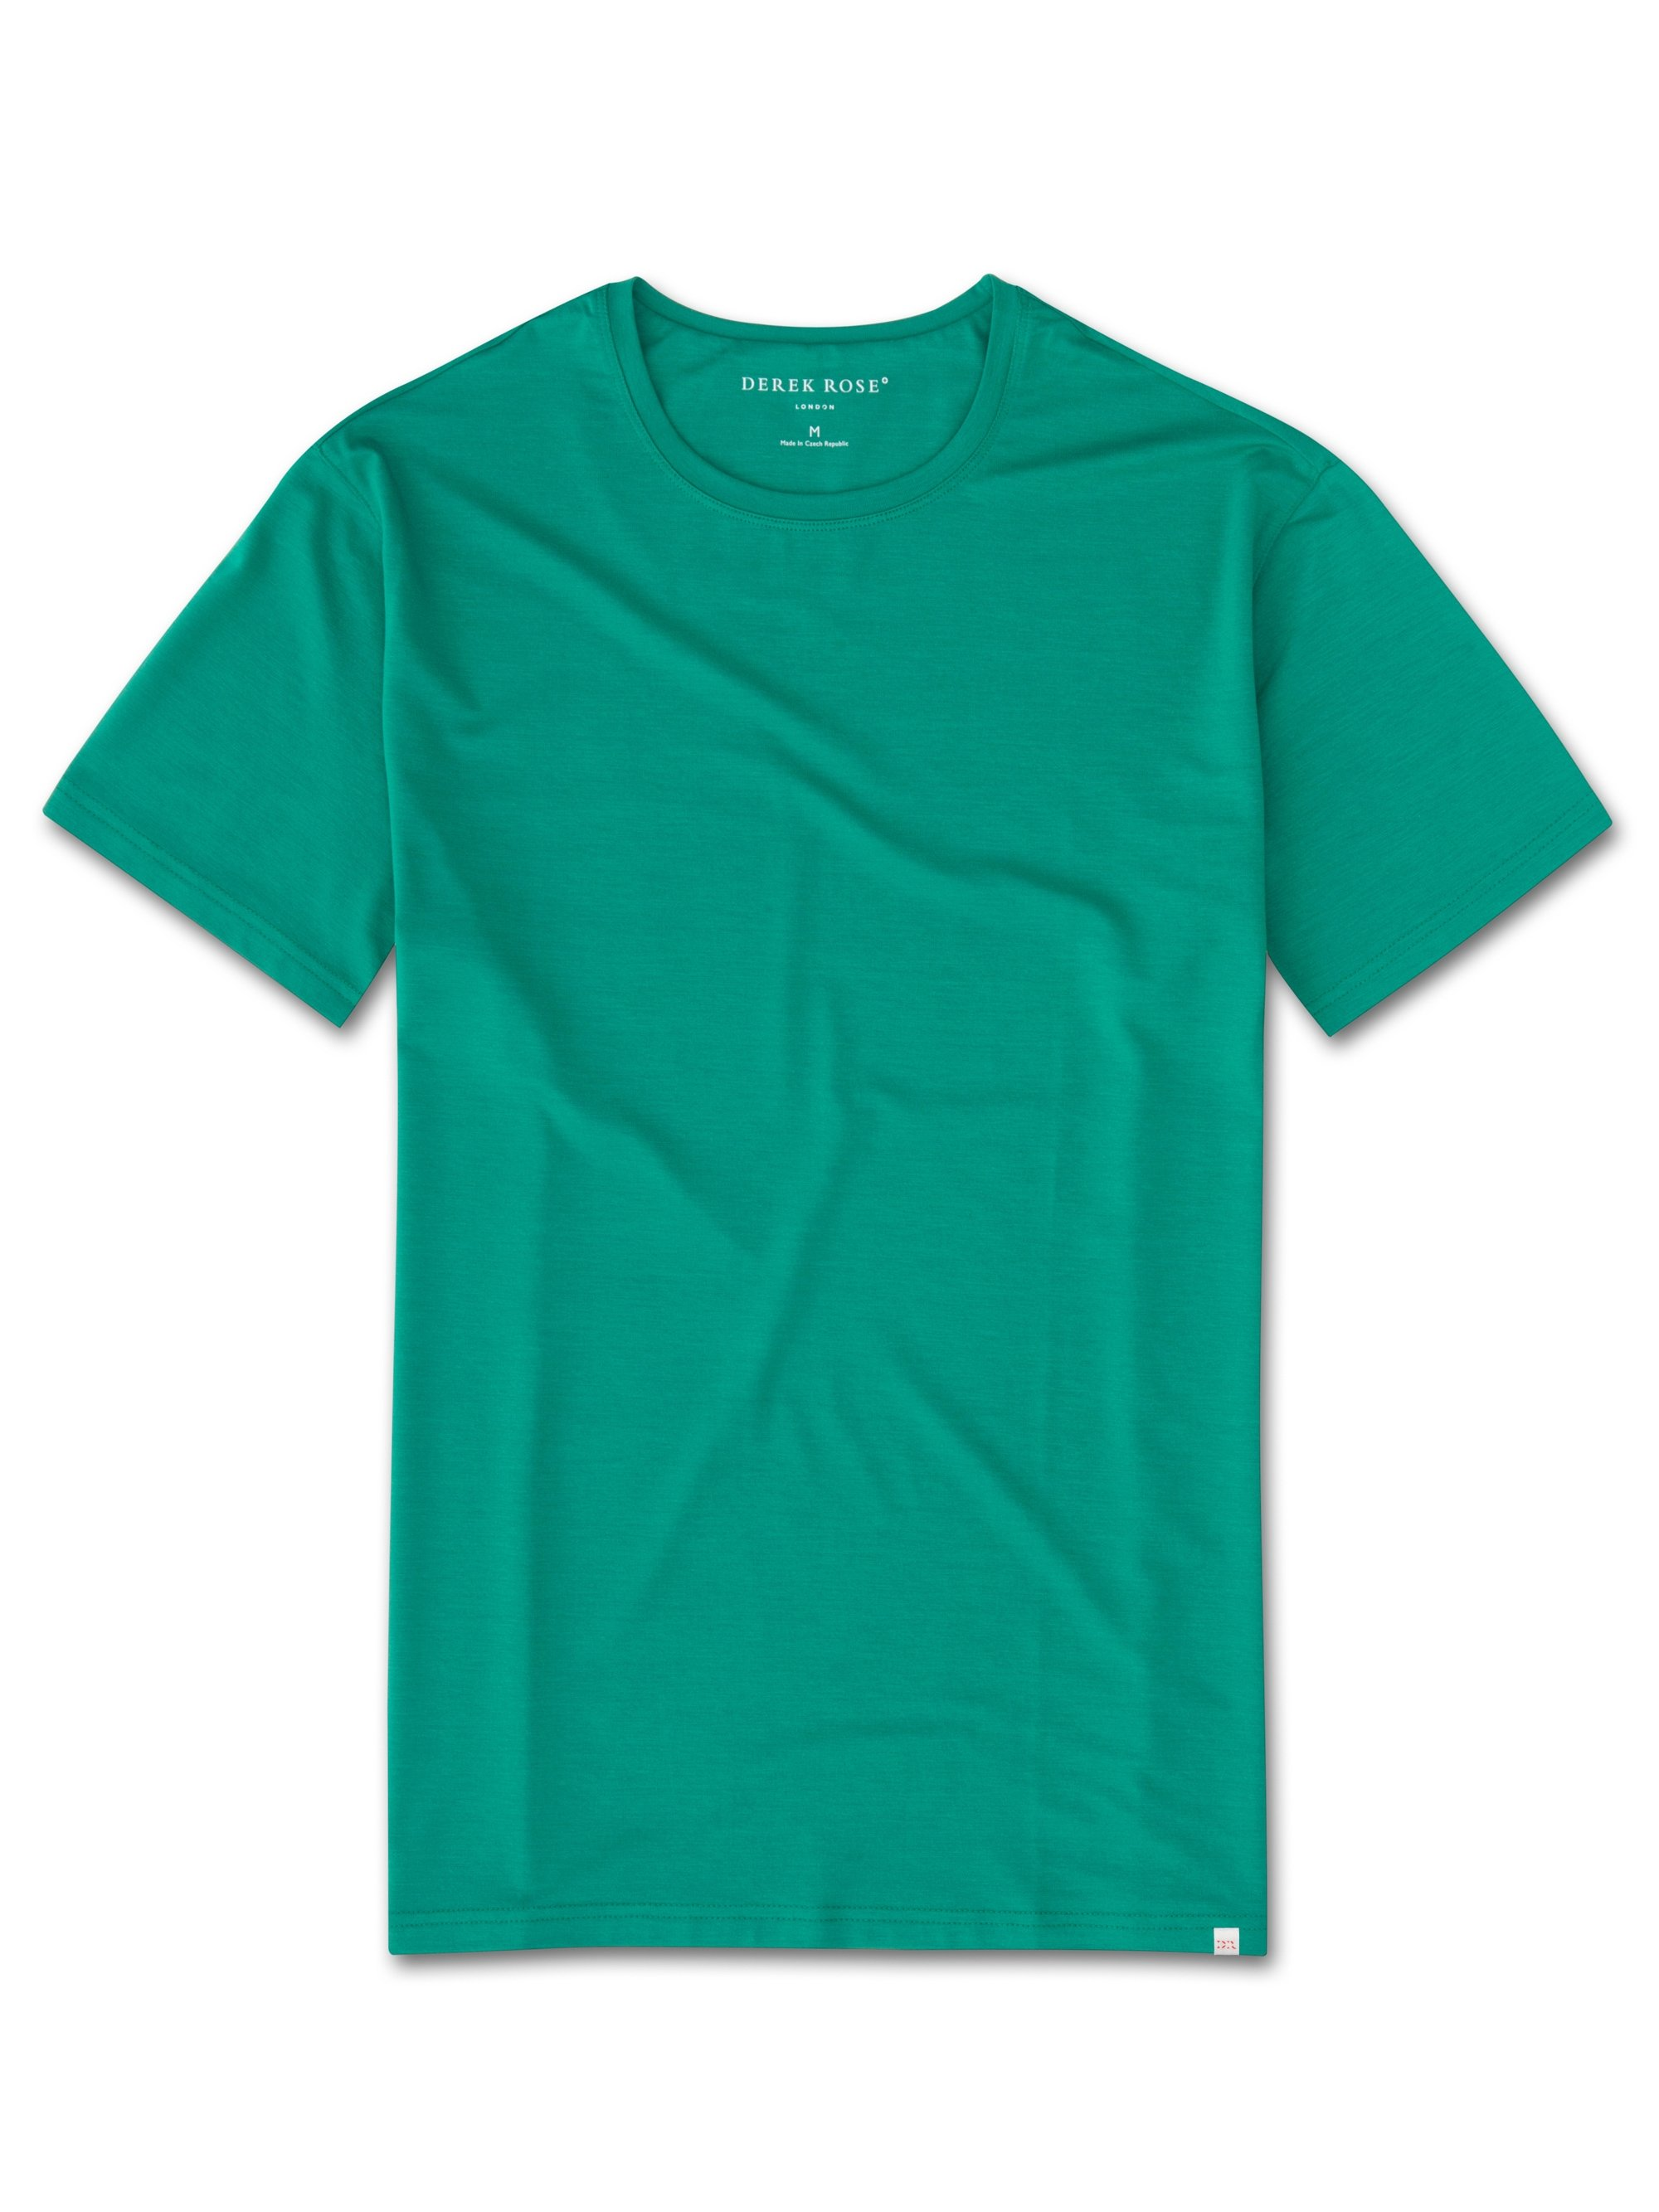 Men's Short Sleeve T-Shirt Basel 6 Micro Modal Stretch Green